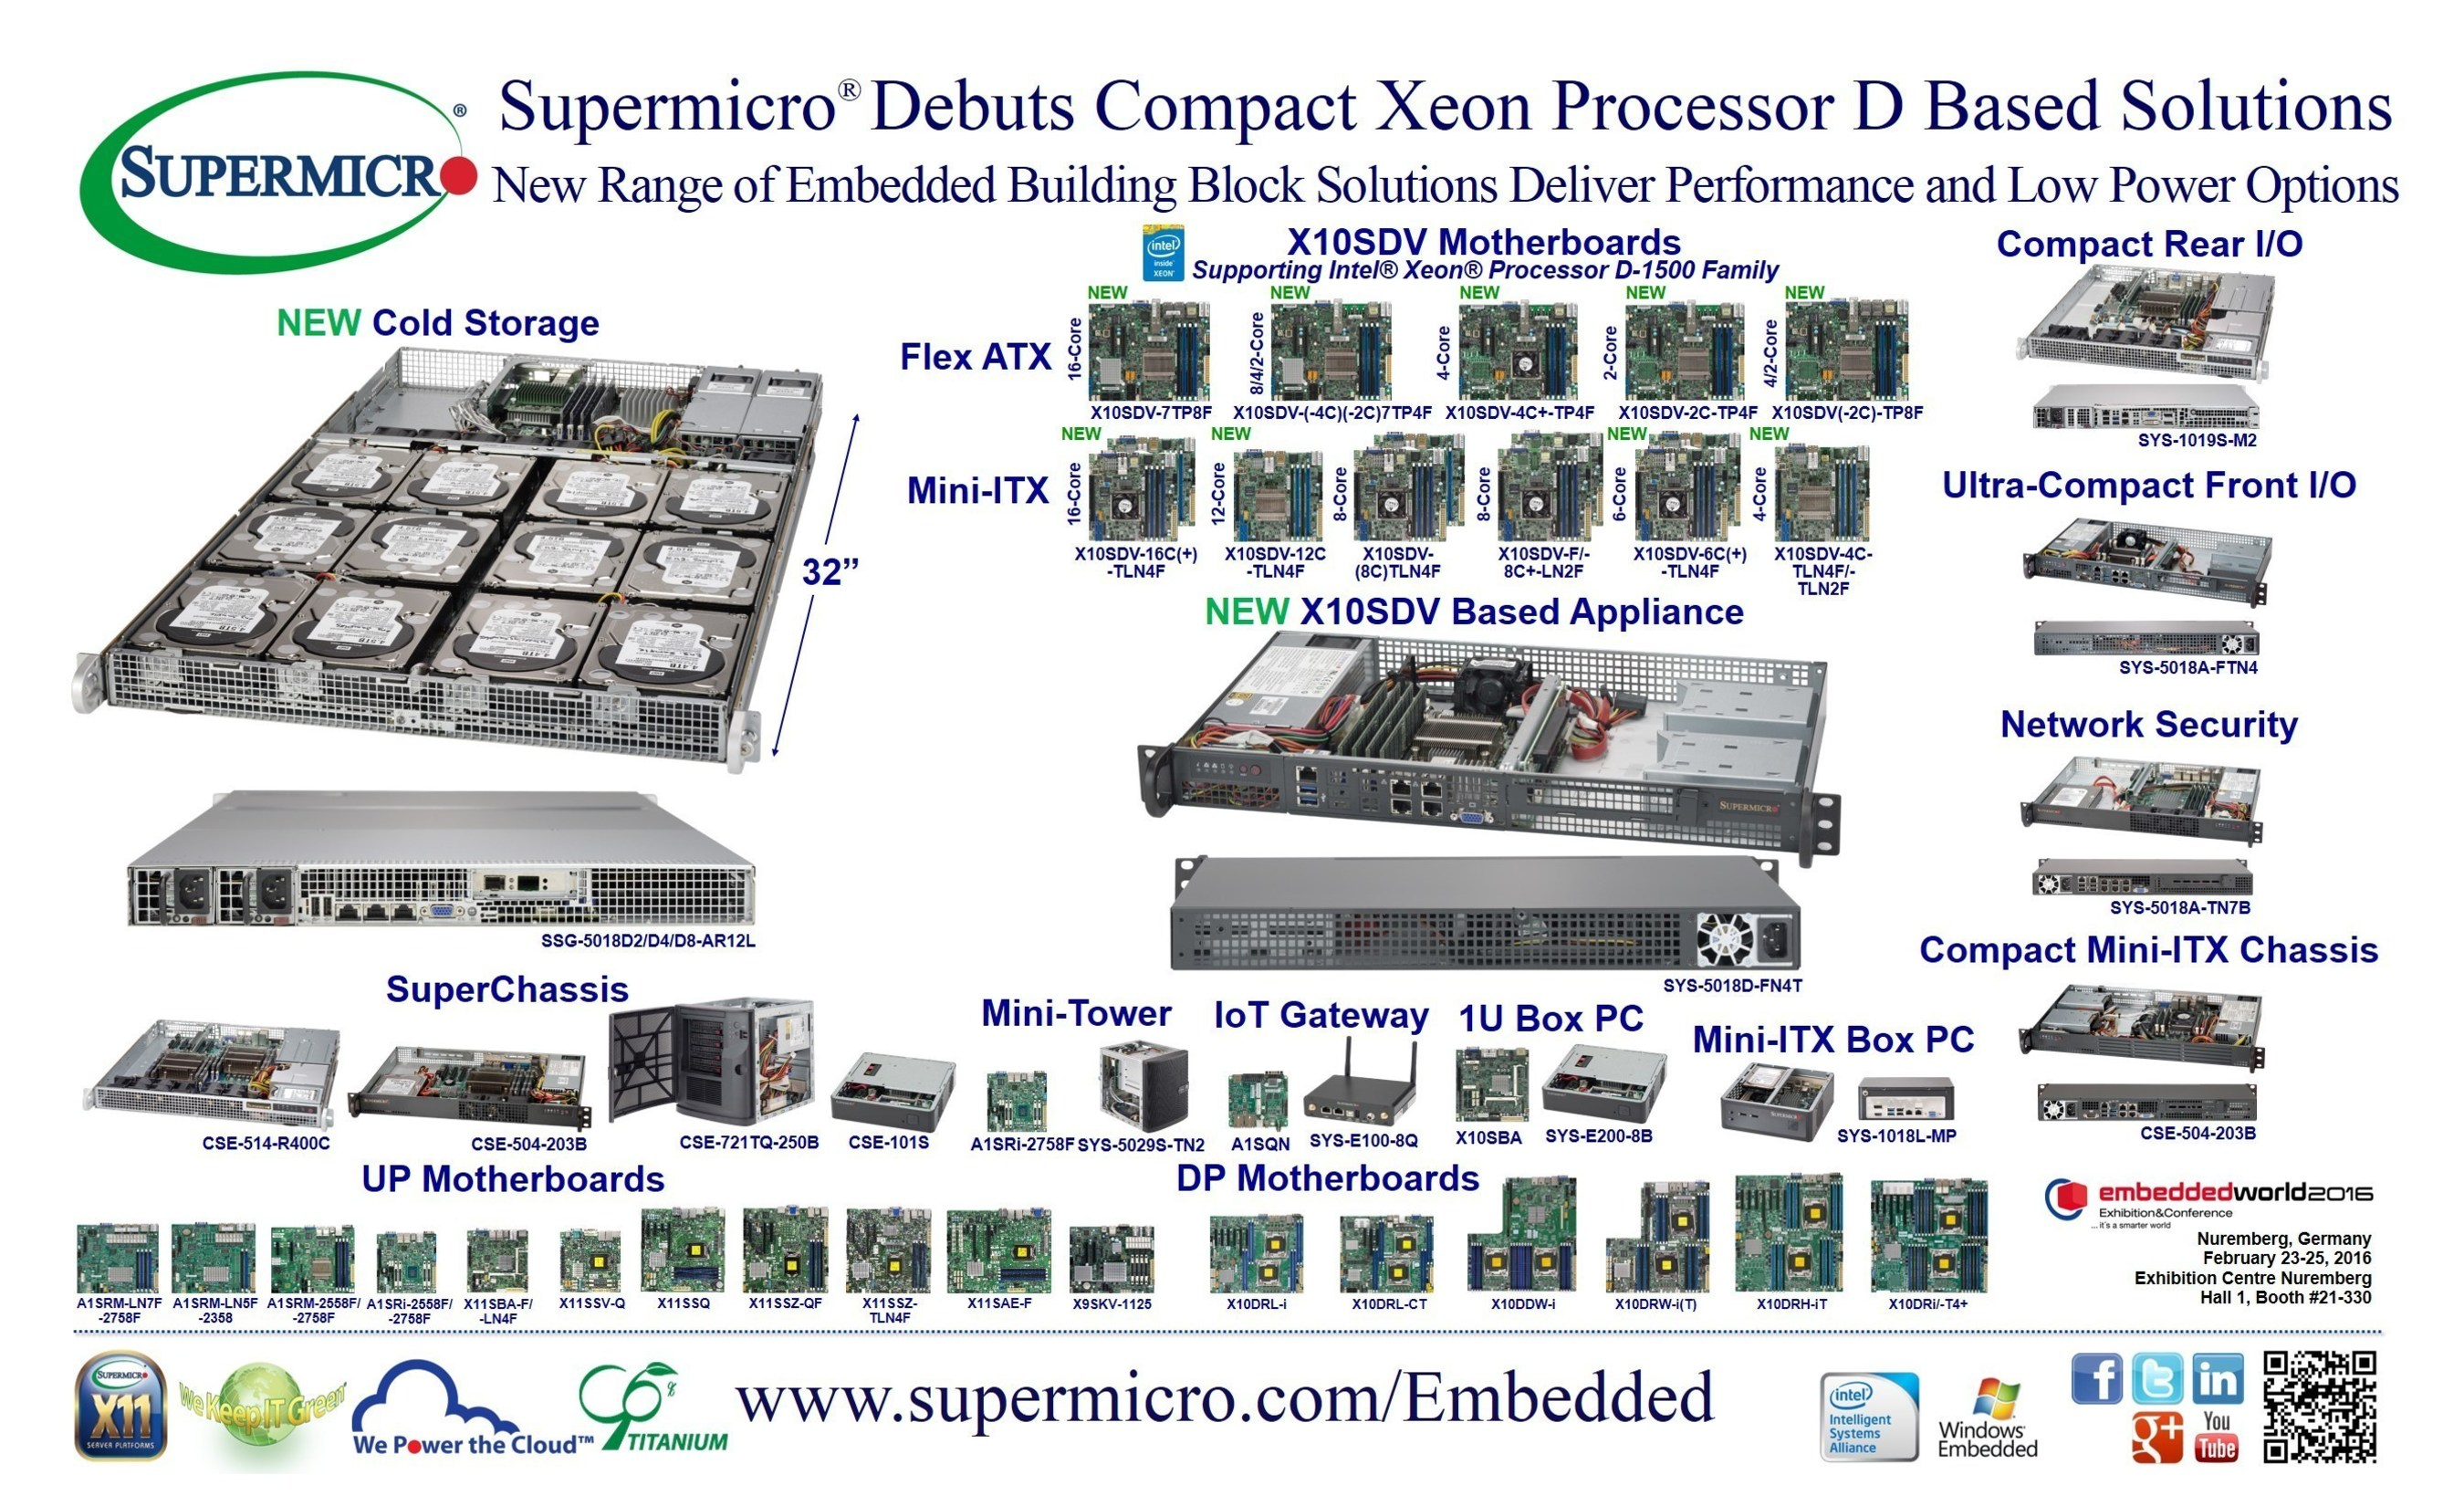 Supermicro(R) Debuts Compact Xeon Processor D Based Solutions @ Embedded World 2016